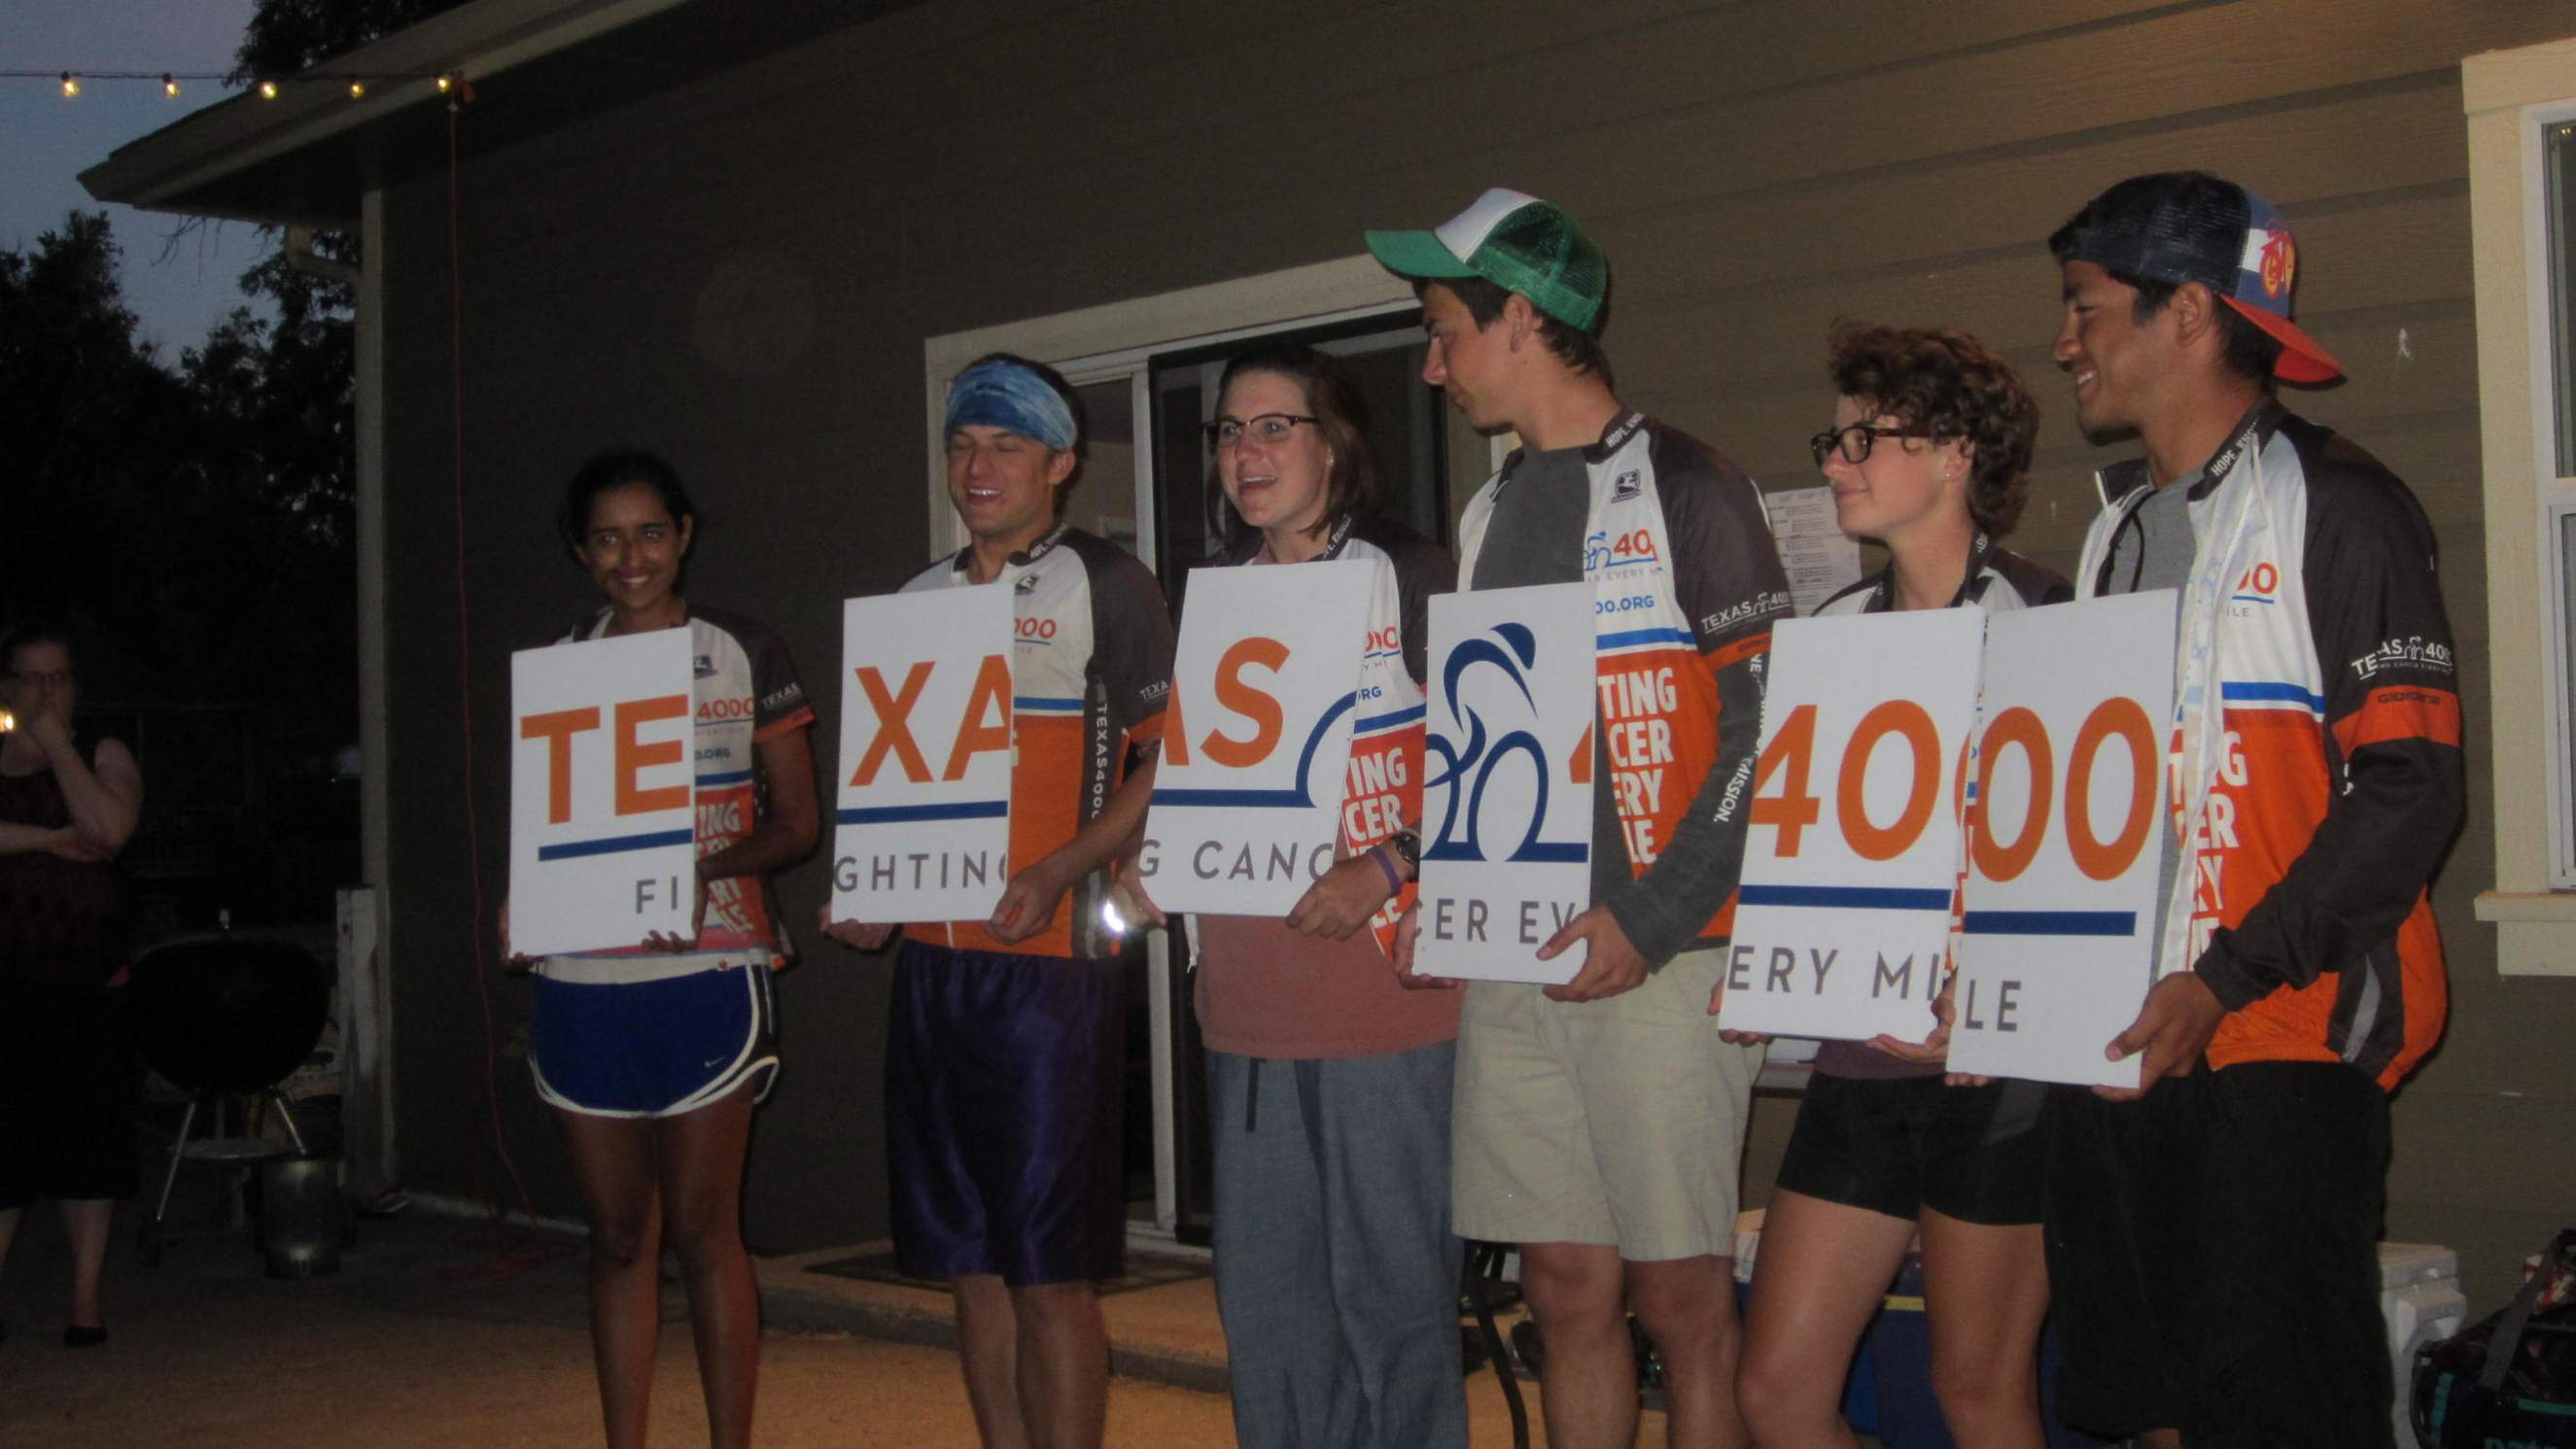 University of Texas at Austin students giving a presentation about the Texas 4000 and their cause against cancer.